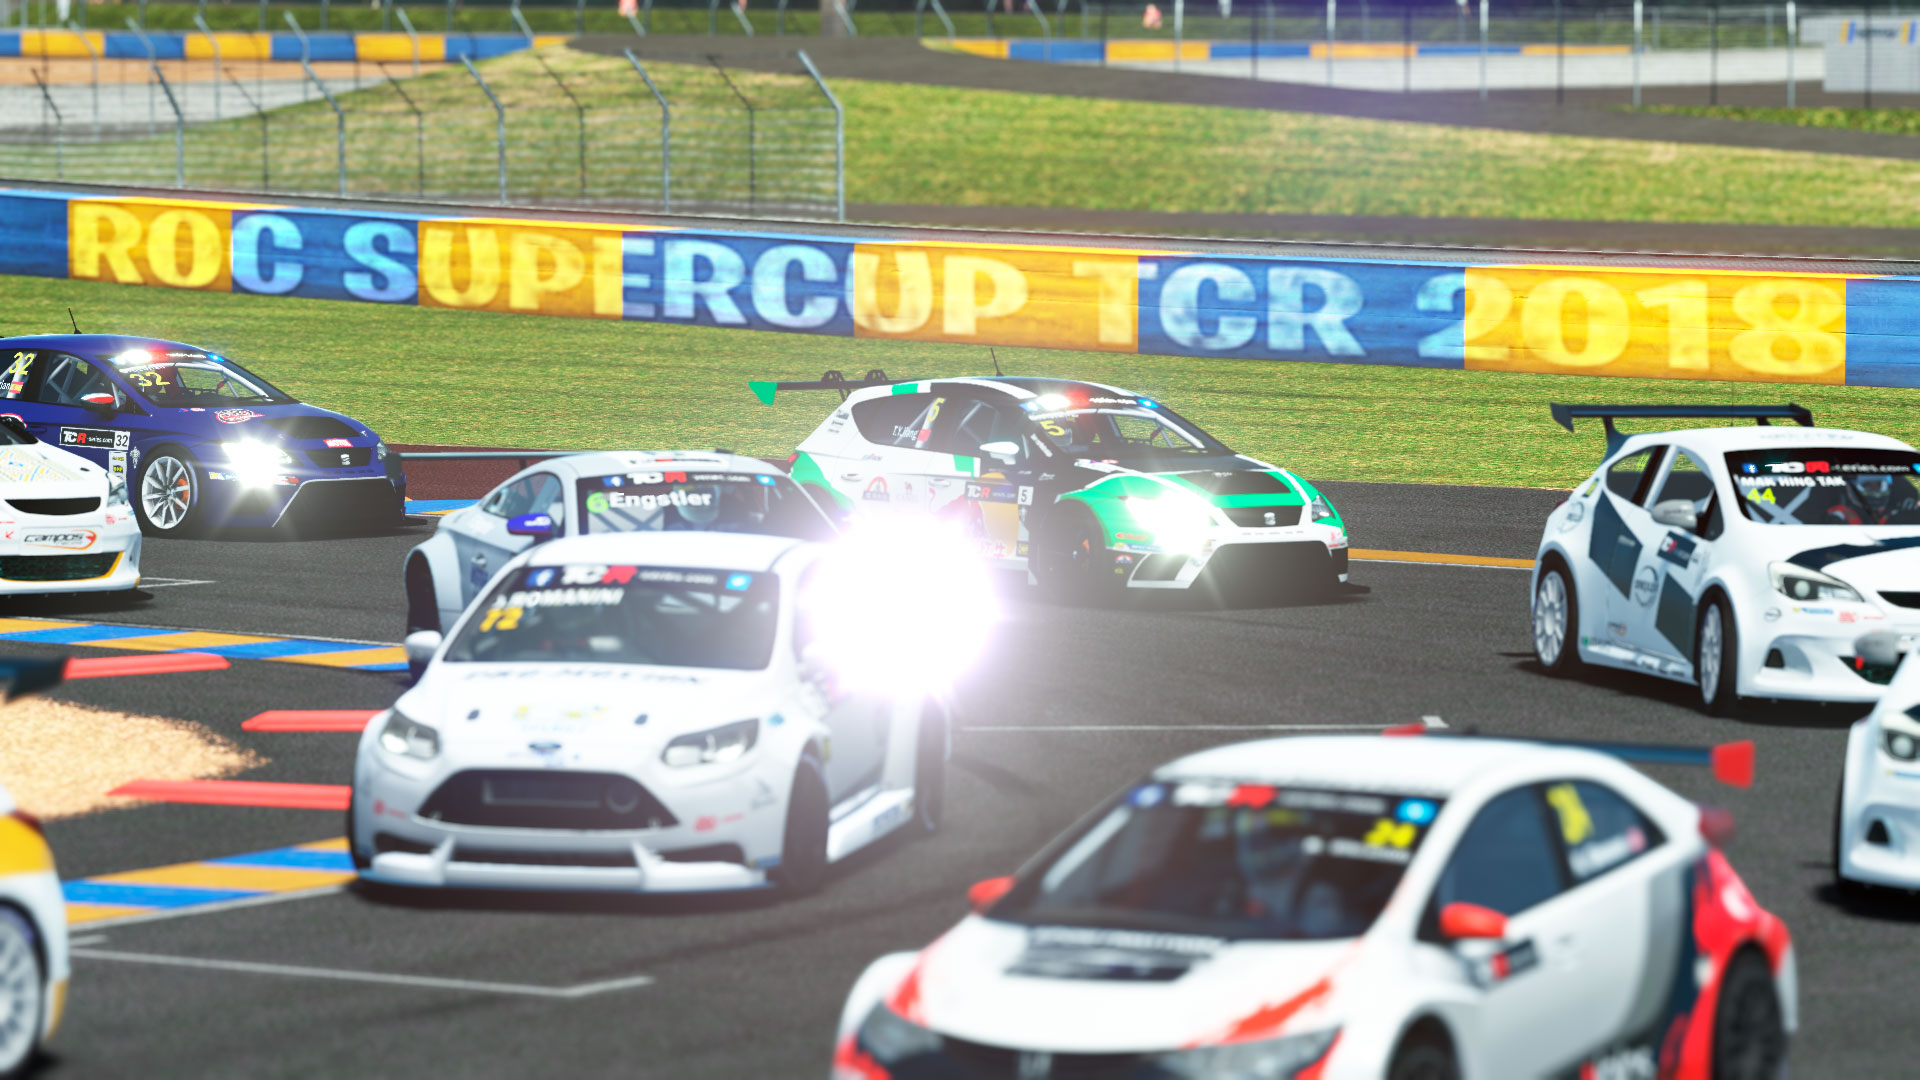 Racing Online Club rFactor2 TCR